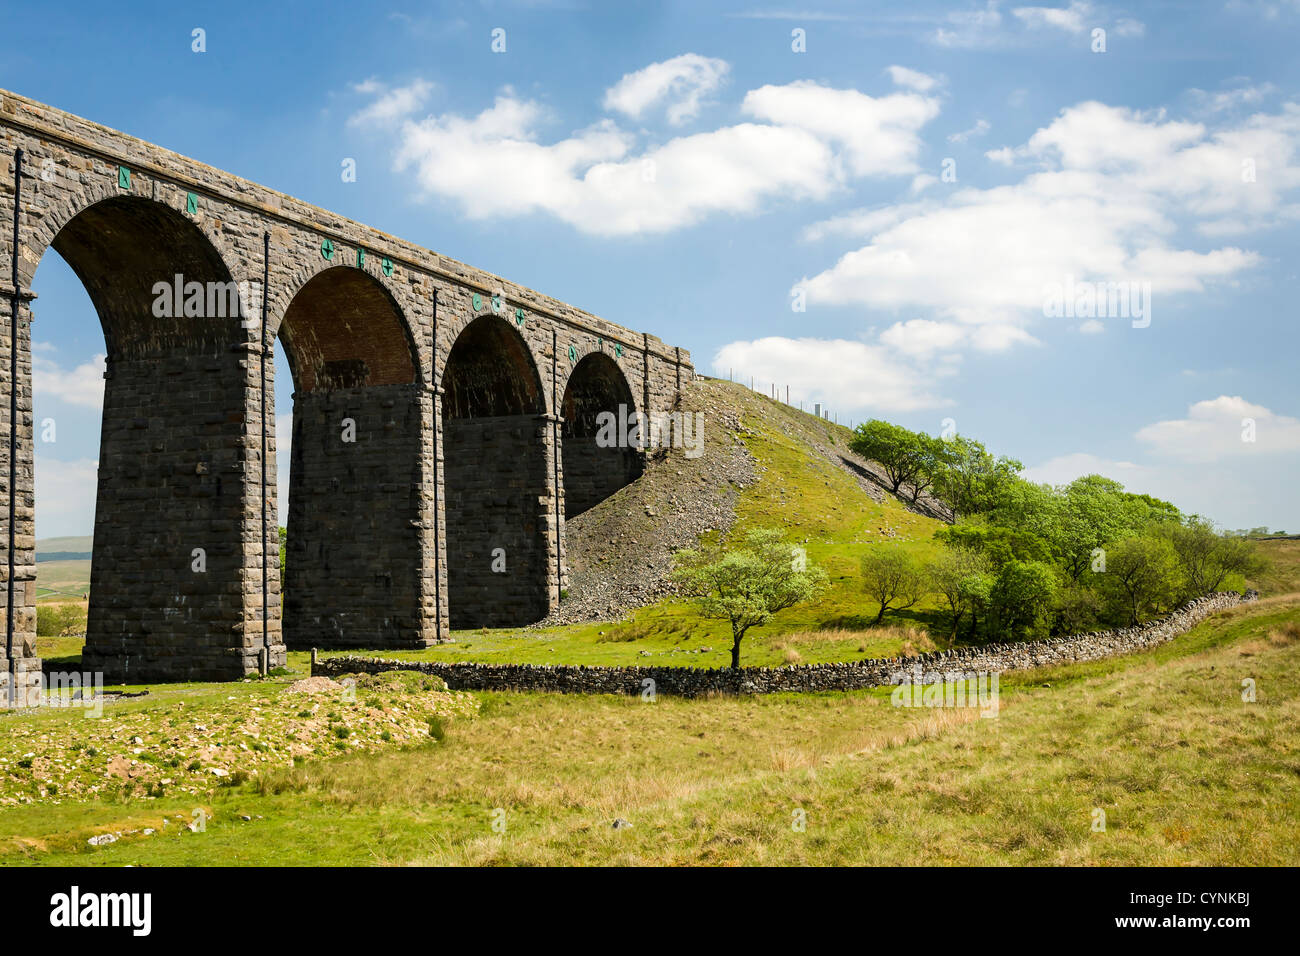 Ribblehead viaduct, North Yorkshire, England, UK Stock Photo